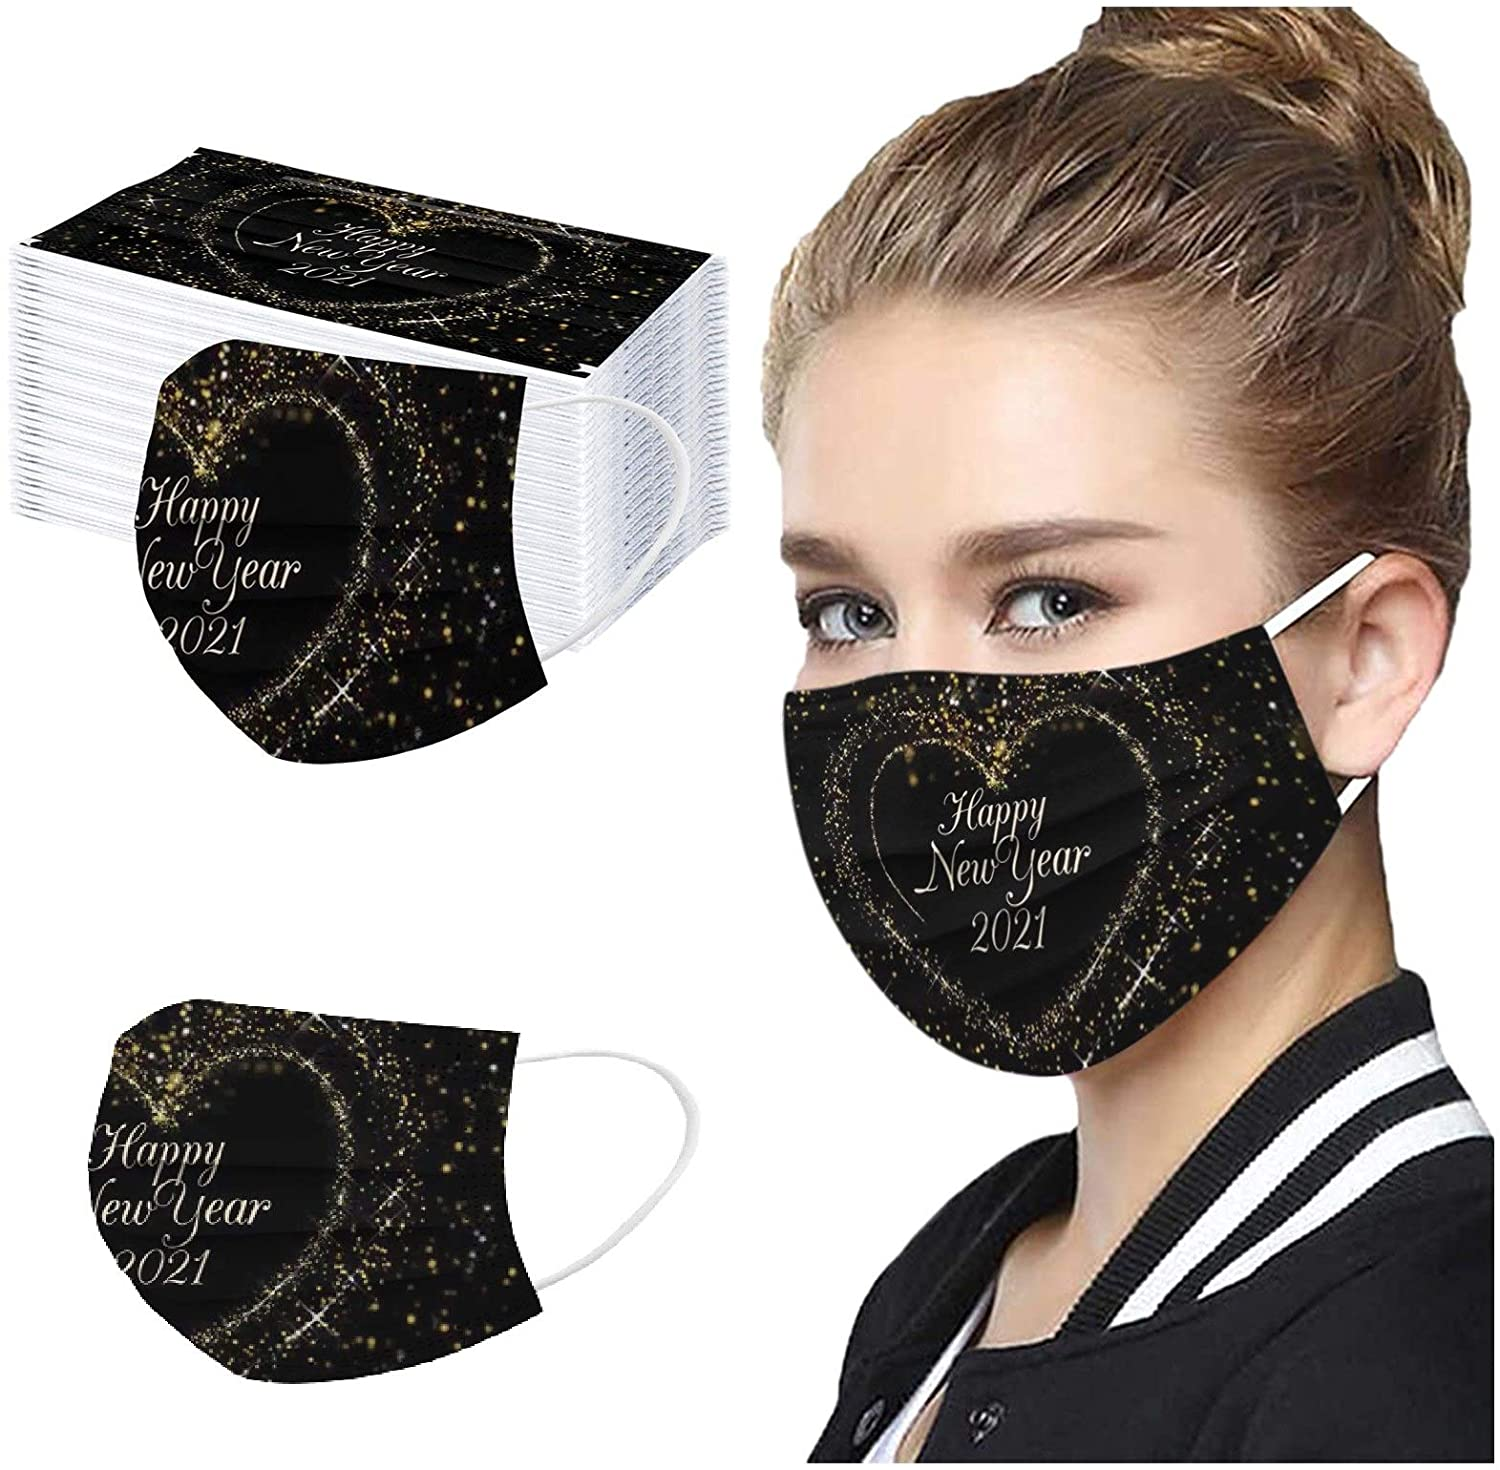 2021 Happy New Years Face_mask, 10/20/30/50/100PC Adult MÀsk, Protection Personal Face Shield Bandanas, for Running, Cycling, Outdoor Activities Men Women (10PC, Black)